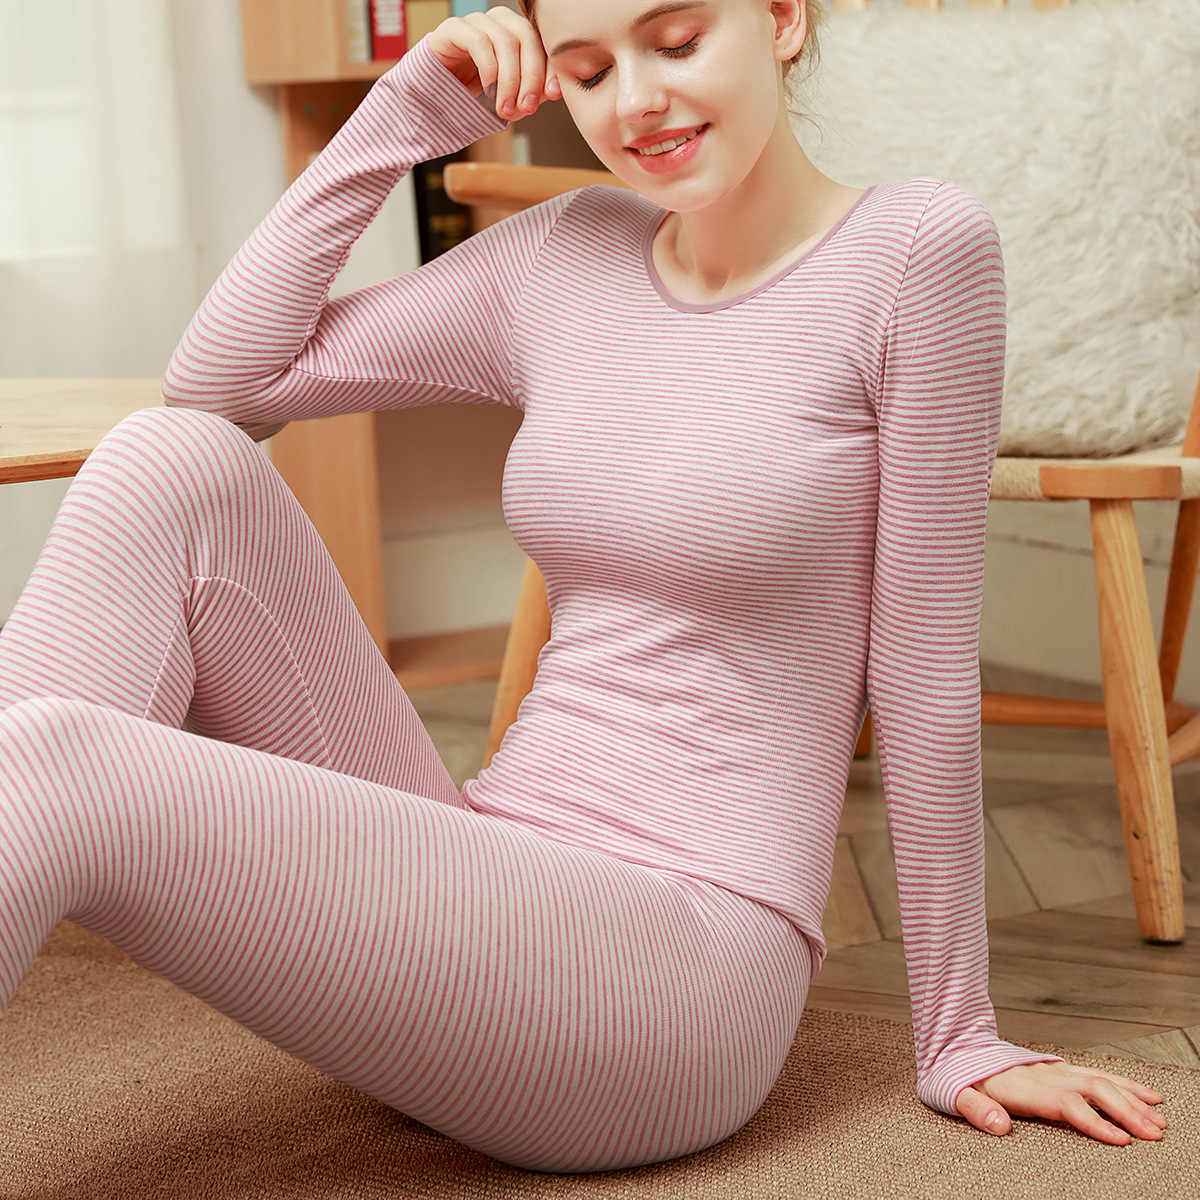 Thermal Underwear Set Women Autumn Winter Thermo Longsleeve Pants and Tops Casual Women 2 Piece Solid Color Elegant Simple Fashion Outdoor Warm Underwear Functional Underwear